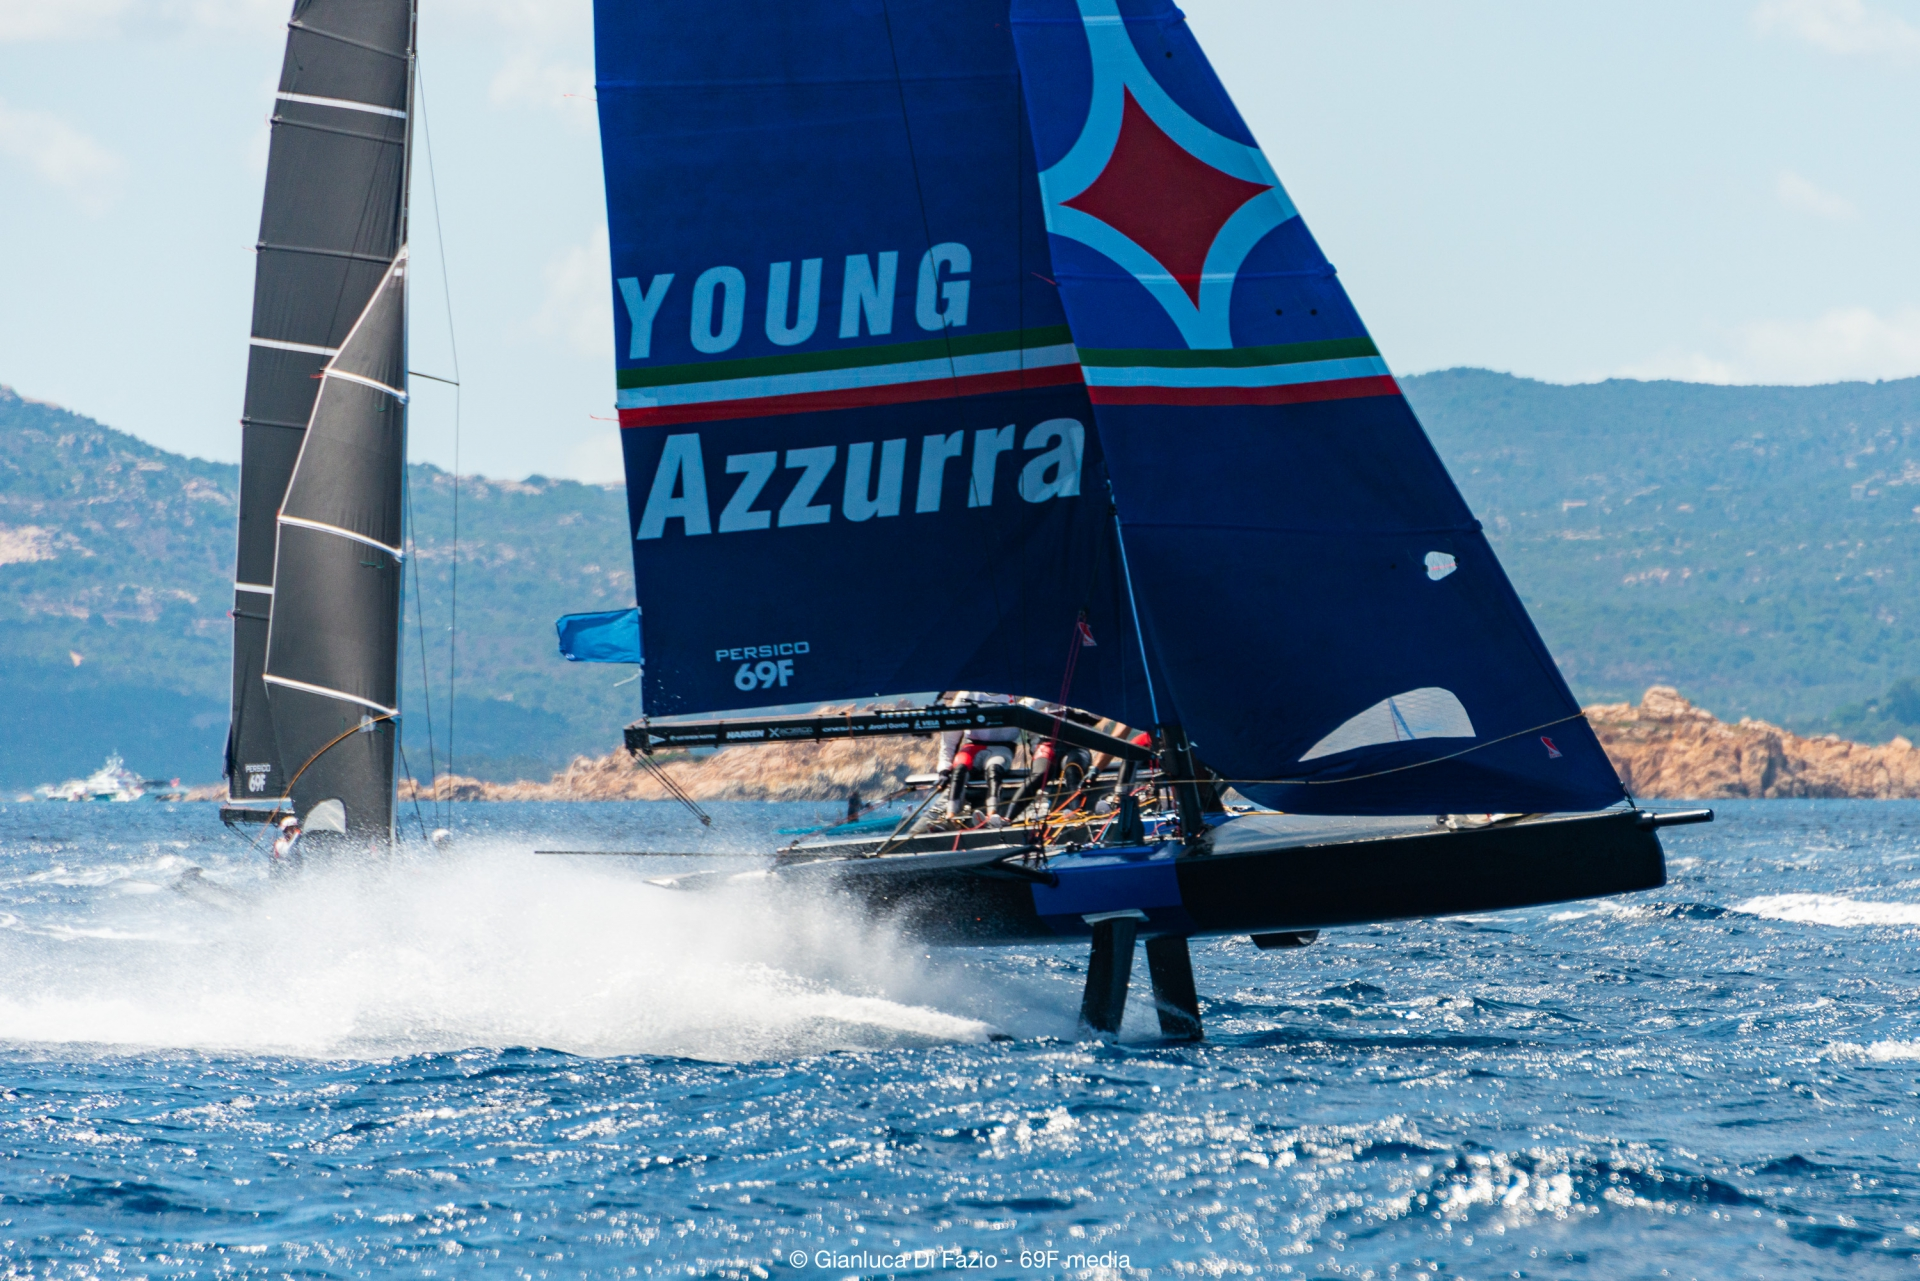 Young Azzurra claims victory again in Persico 69F Cup Grand Prix 2.2 - NEWS - Yacht Club Costa Smeralda